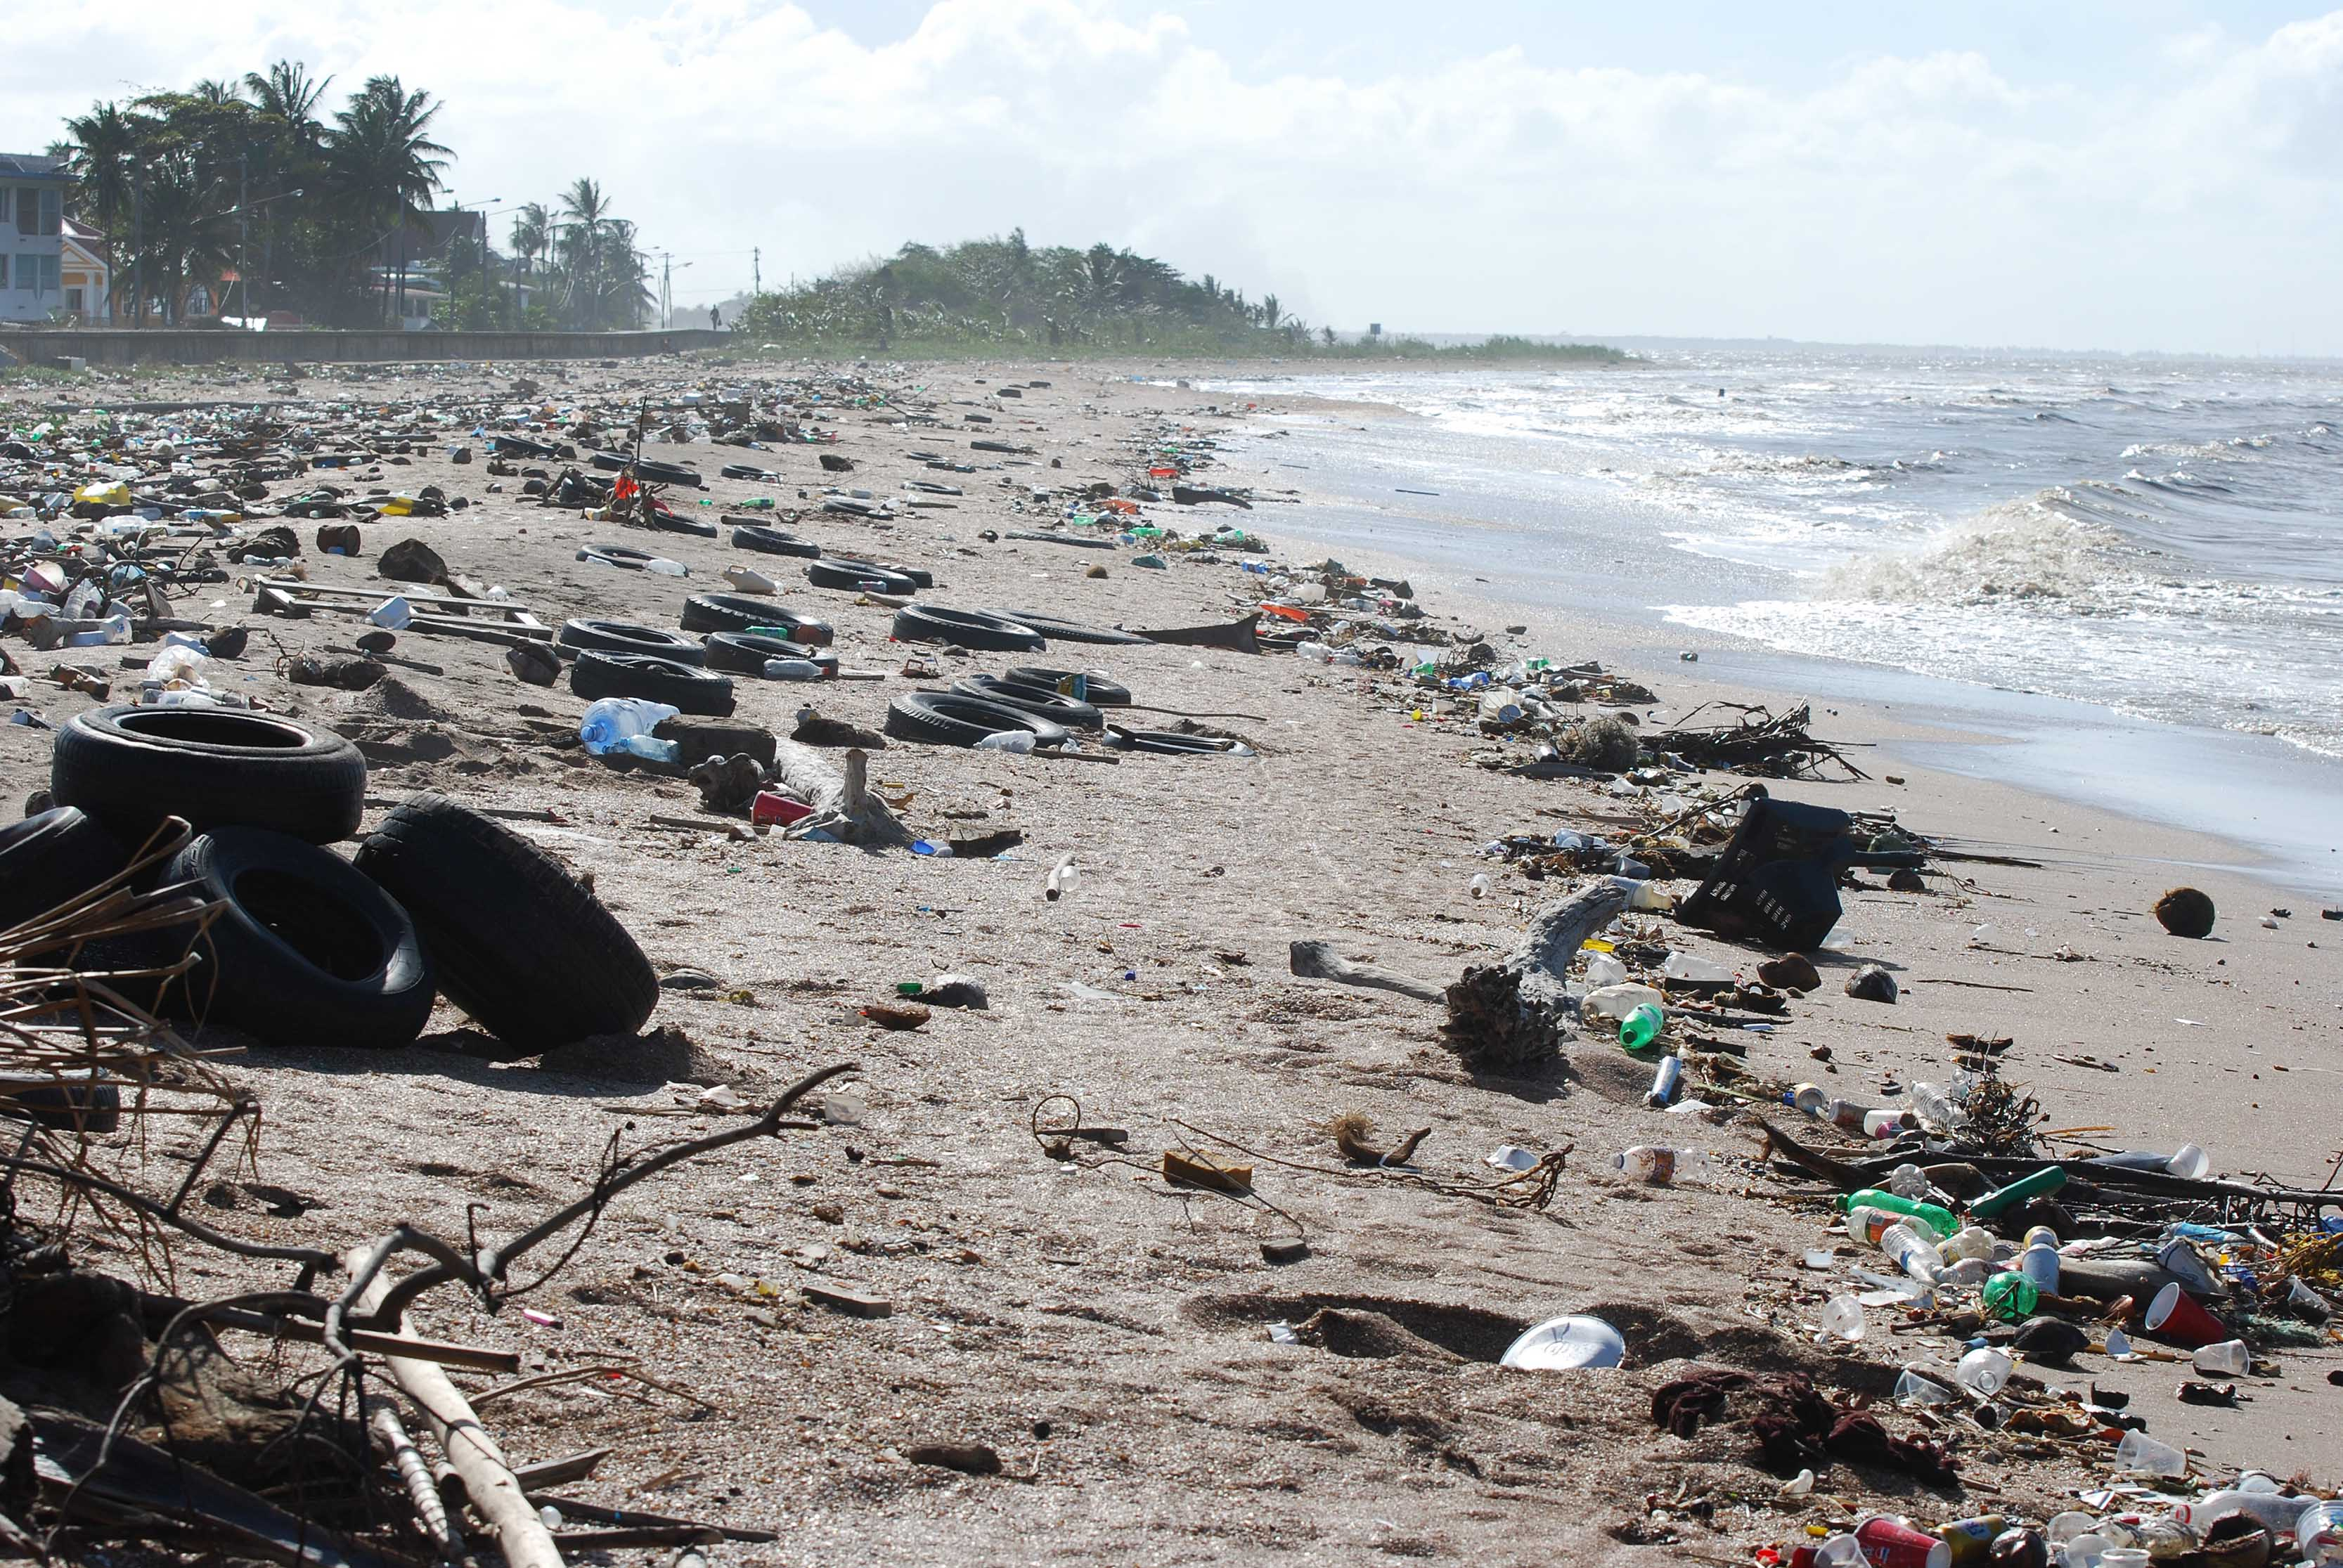 Microplastics are considered the most common form of marine litter.